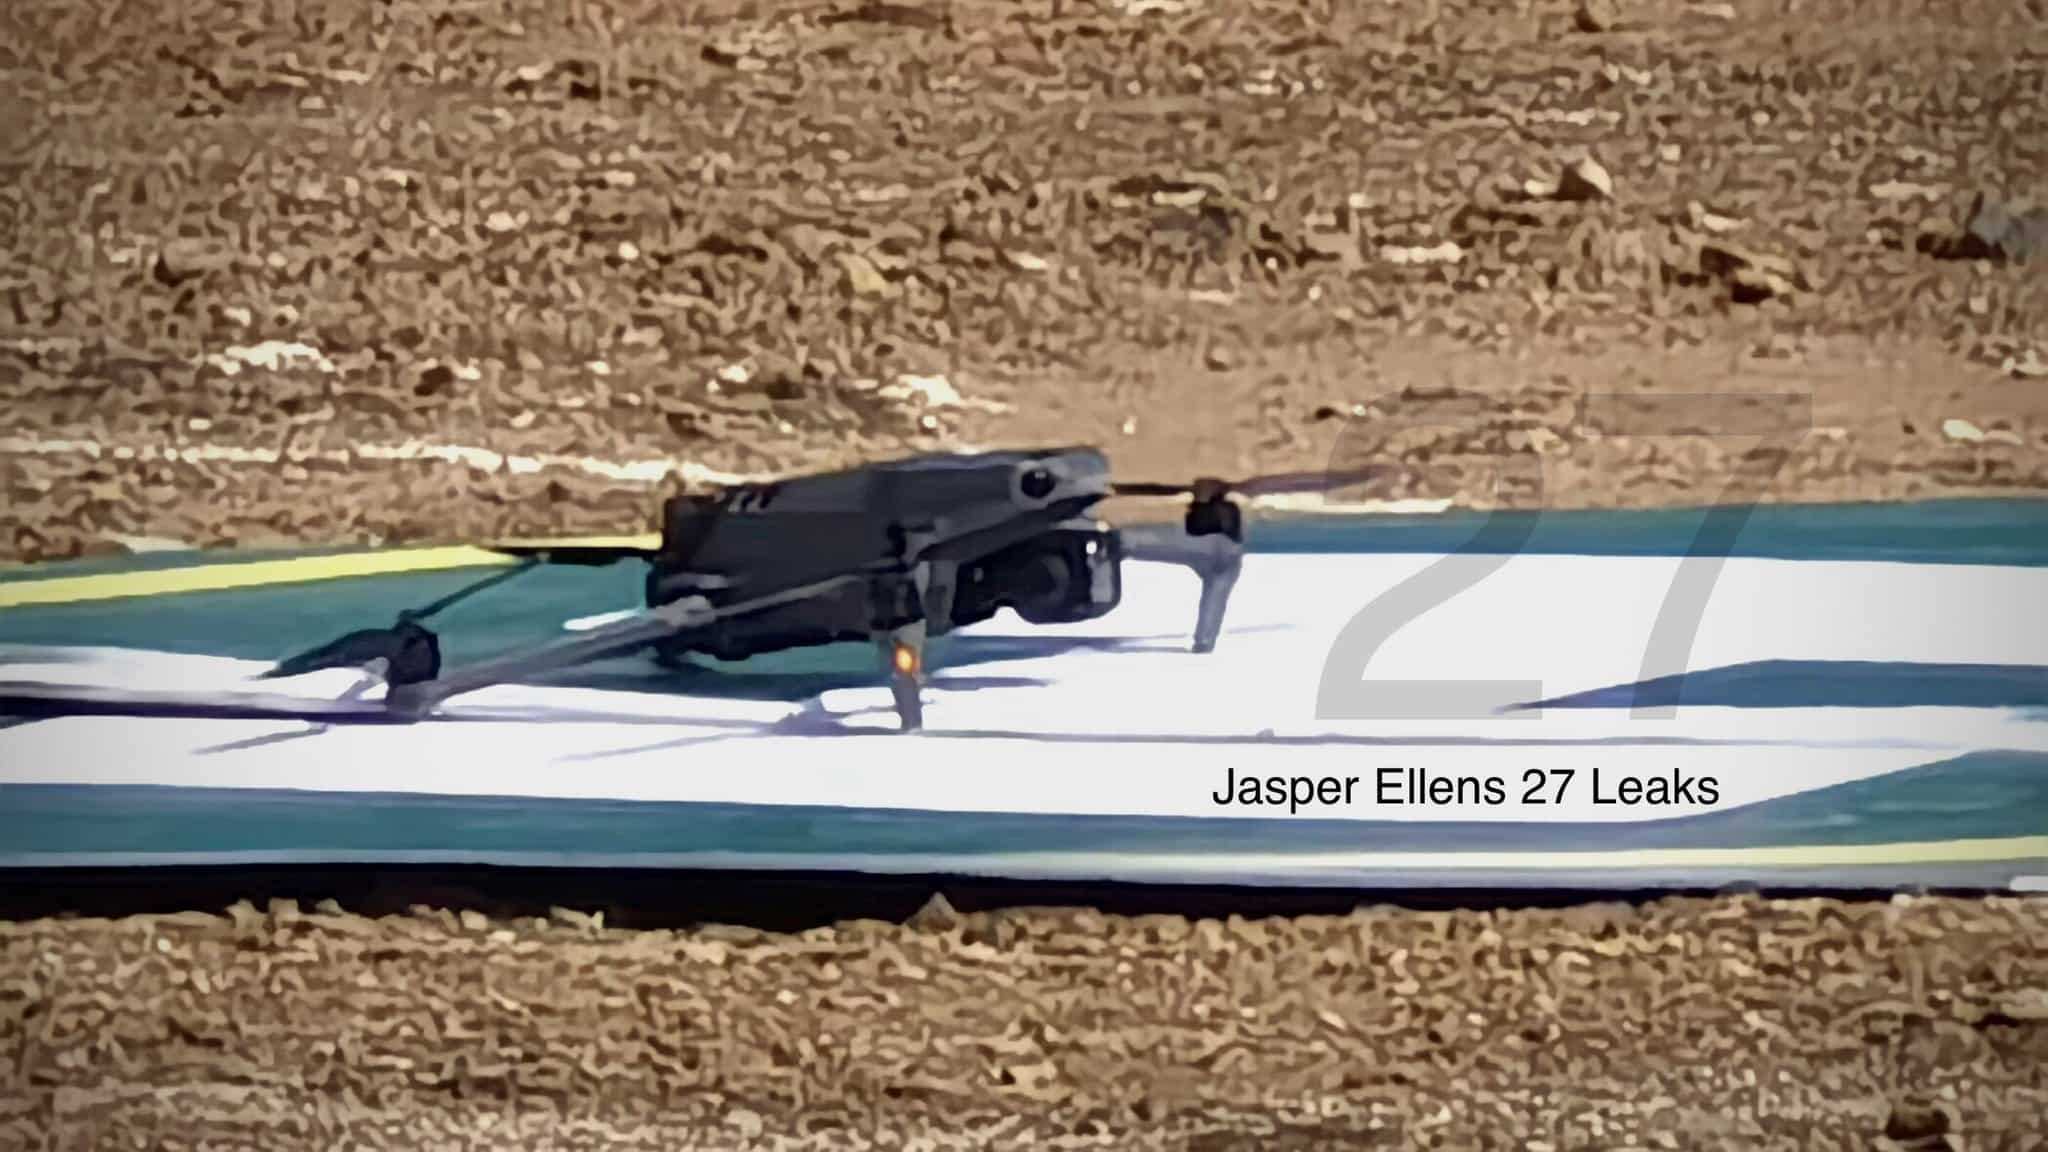 DJI Mavic 3 drone shows up again in best-leaked photos to date